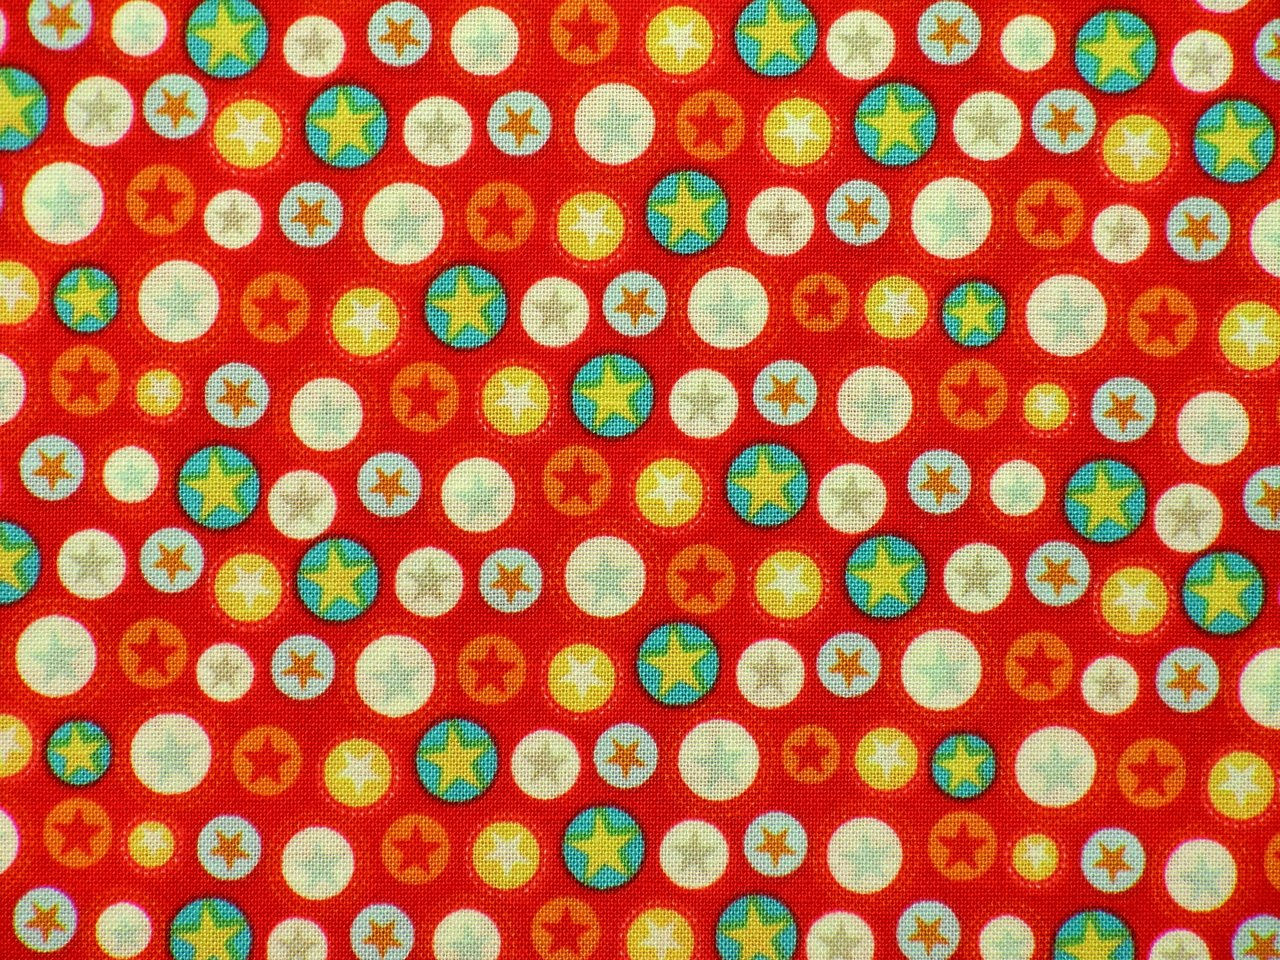 Kindergardinen Sterne Patchwork Fabrics Boy Crazy Stars Red Colourfull